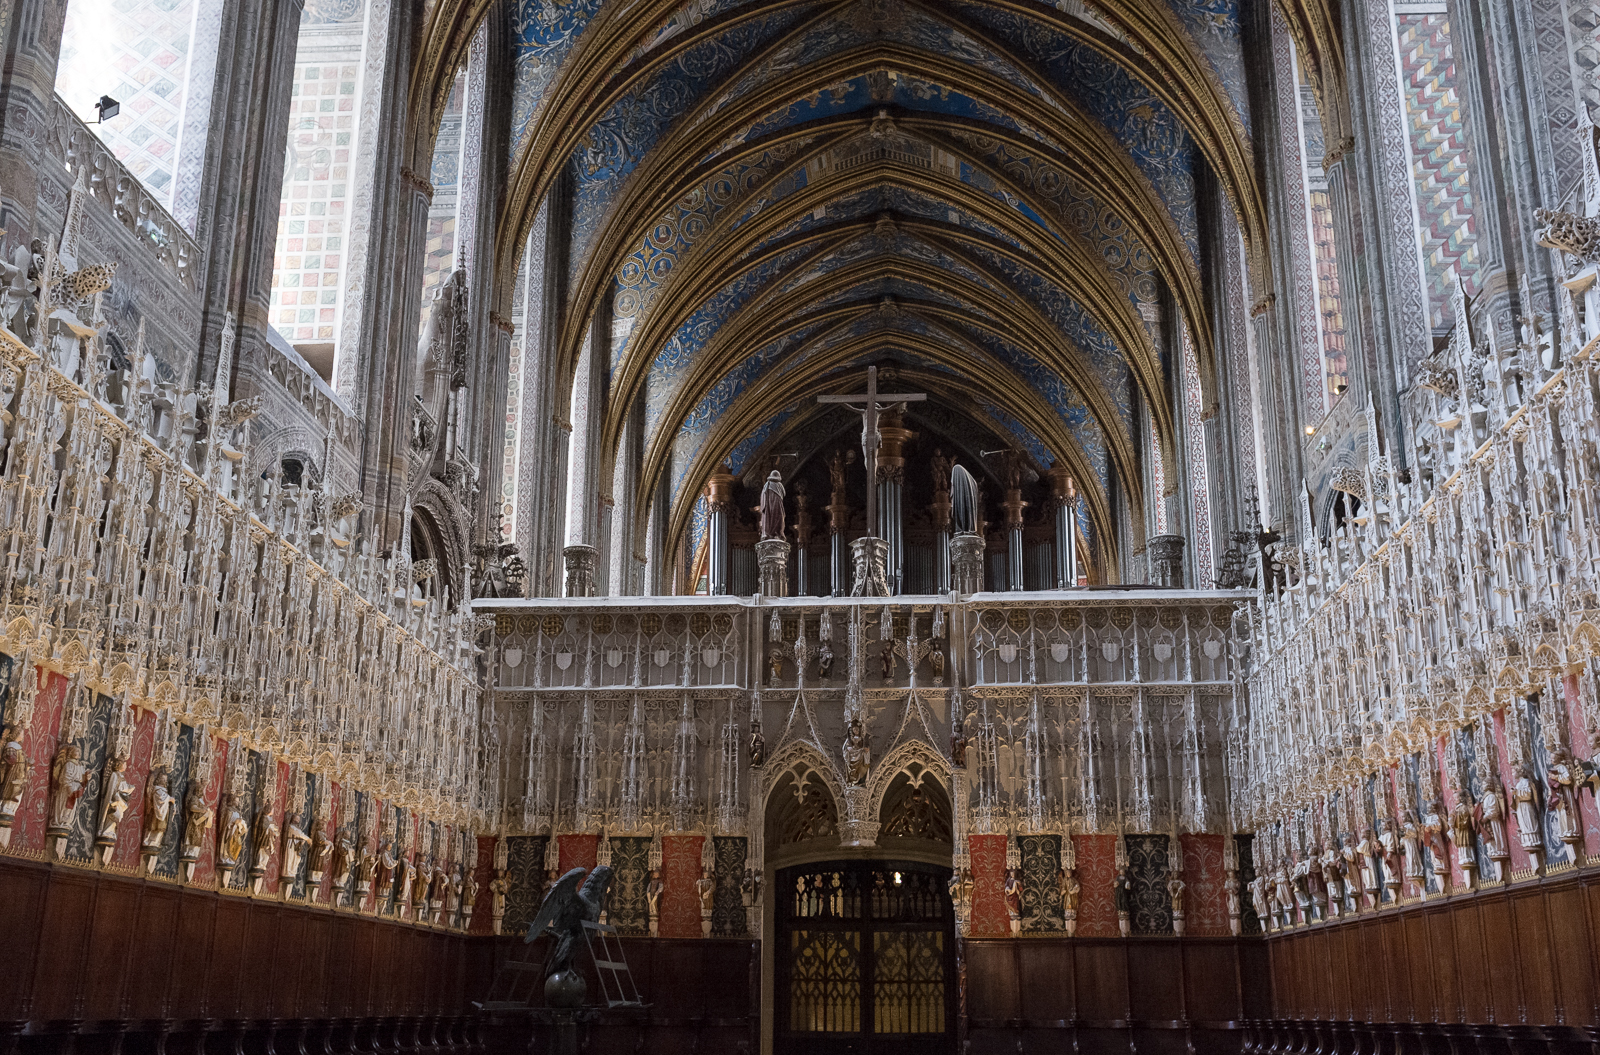 The choir screen in Sainte-Cécile Cathedral in Albi, France